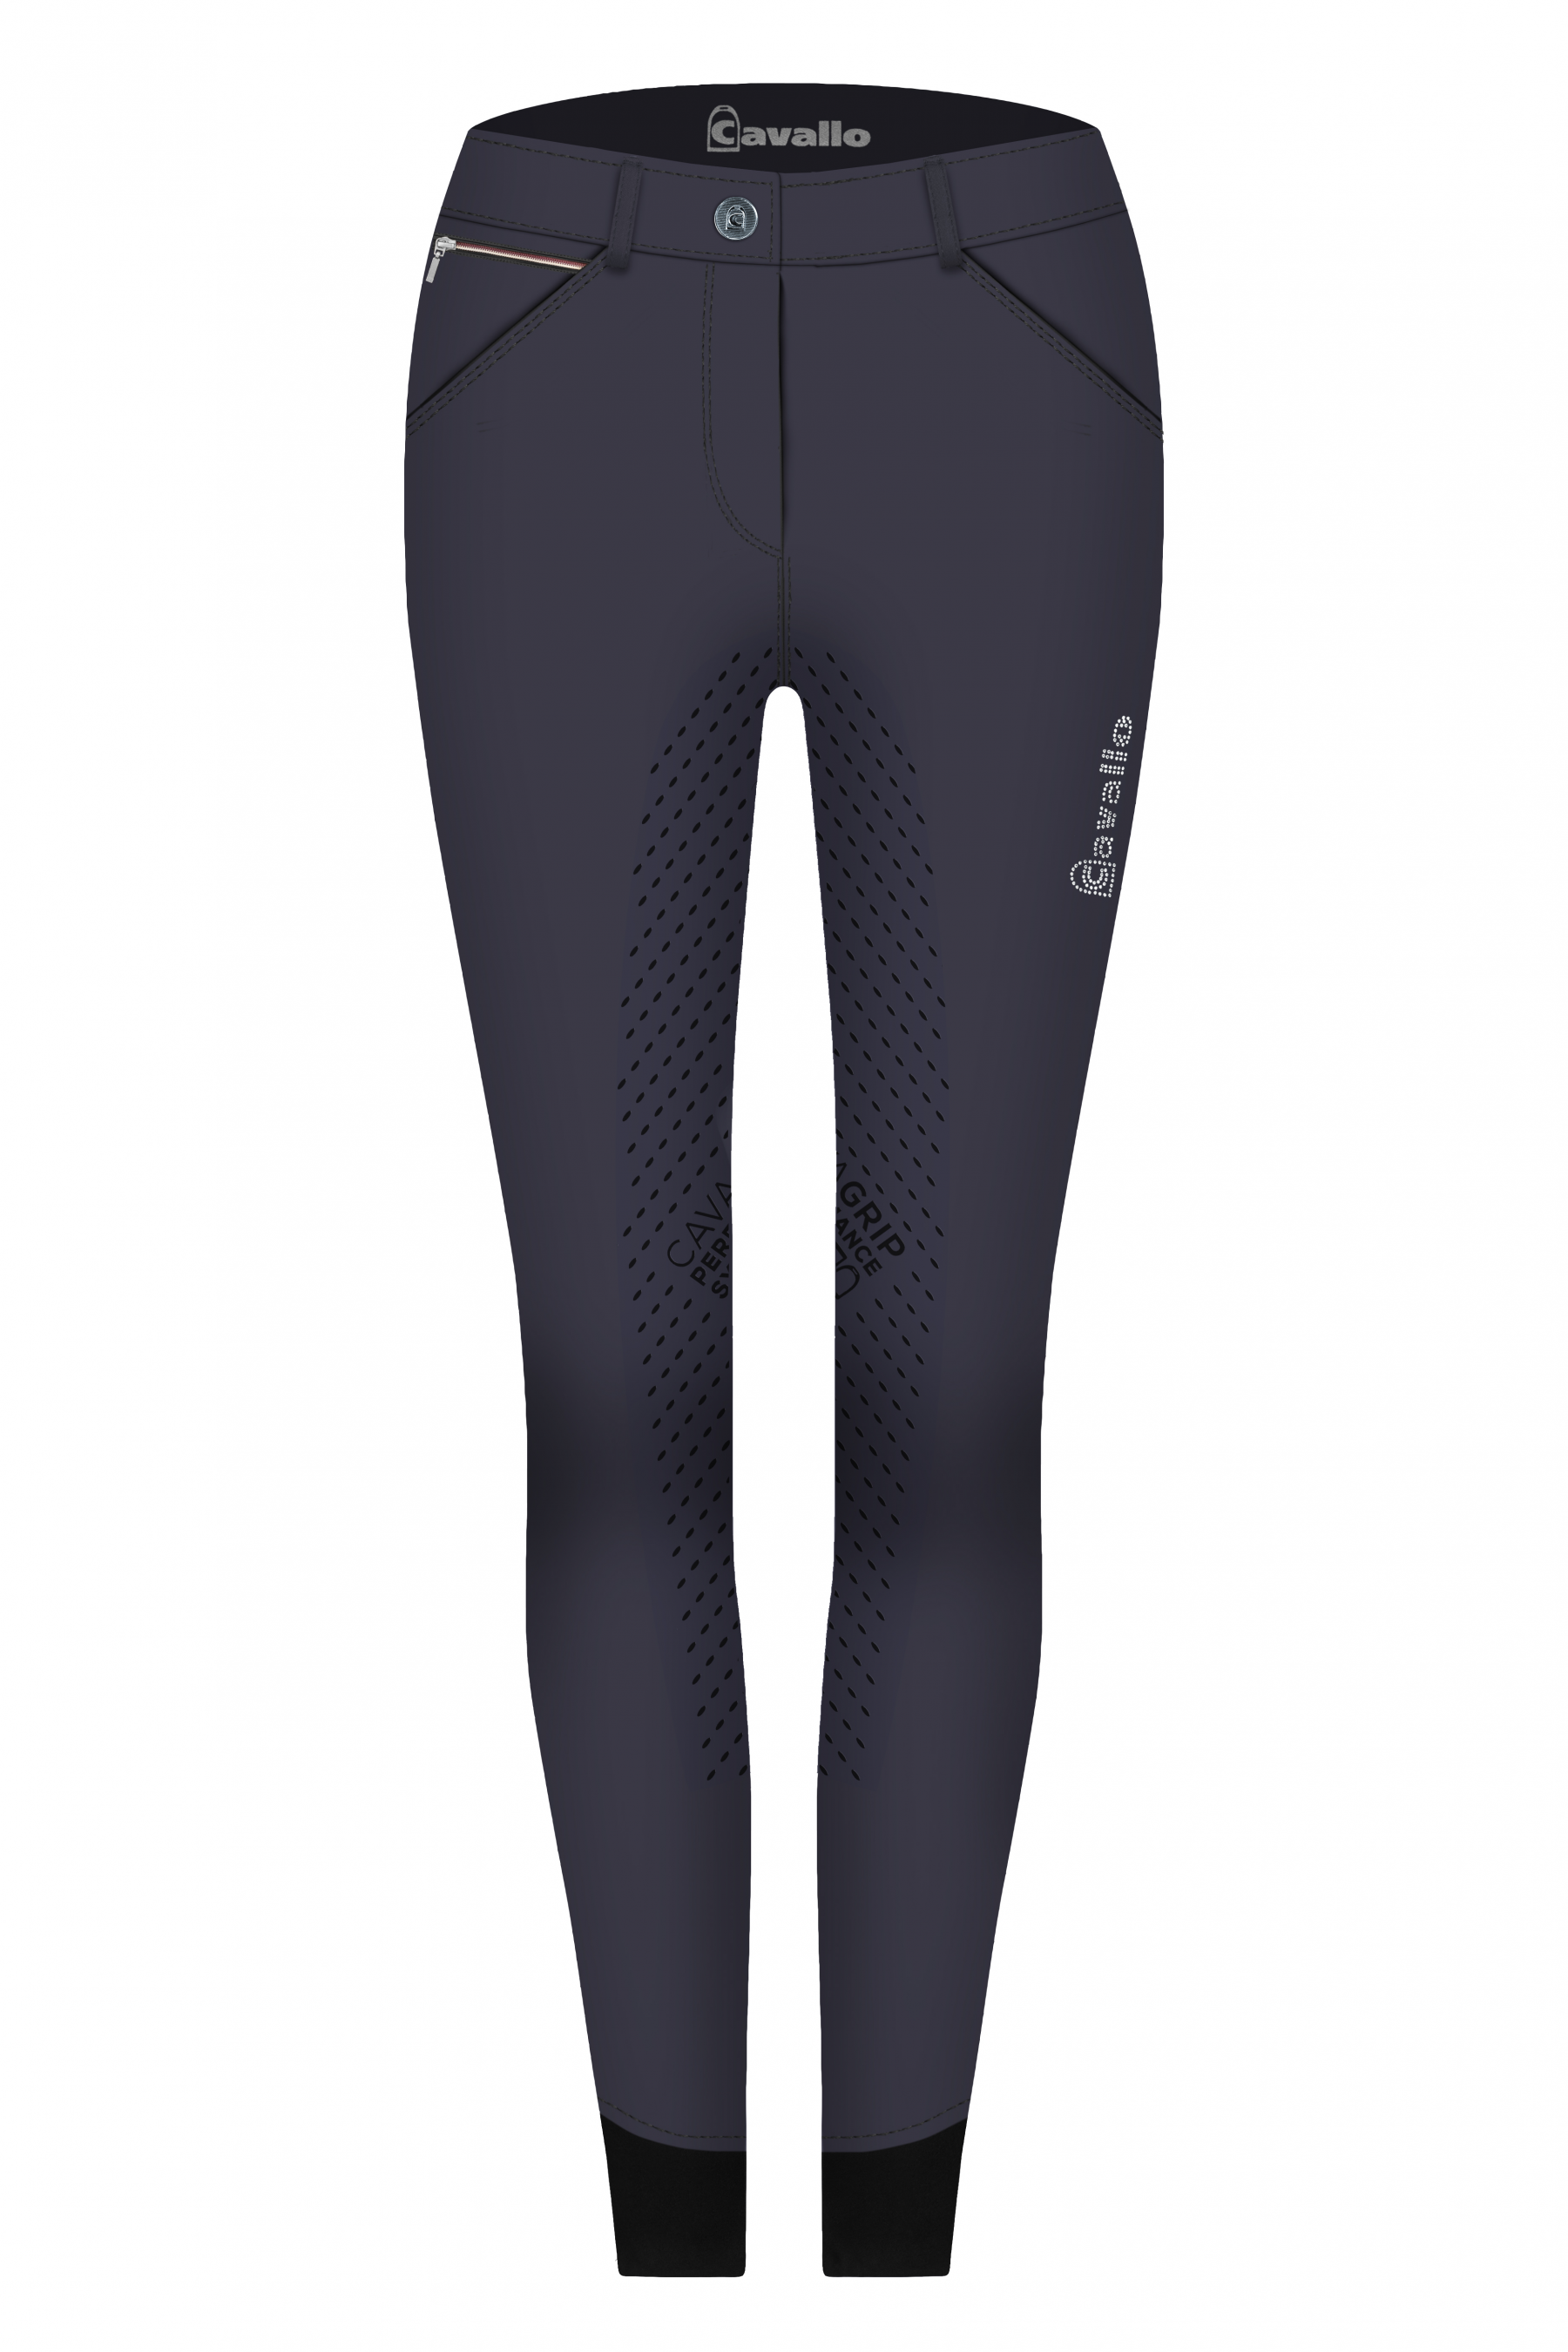 Cavallo Calima Full Seat Grip Breeches